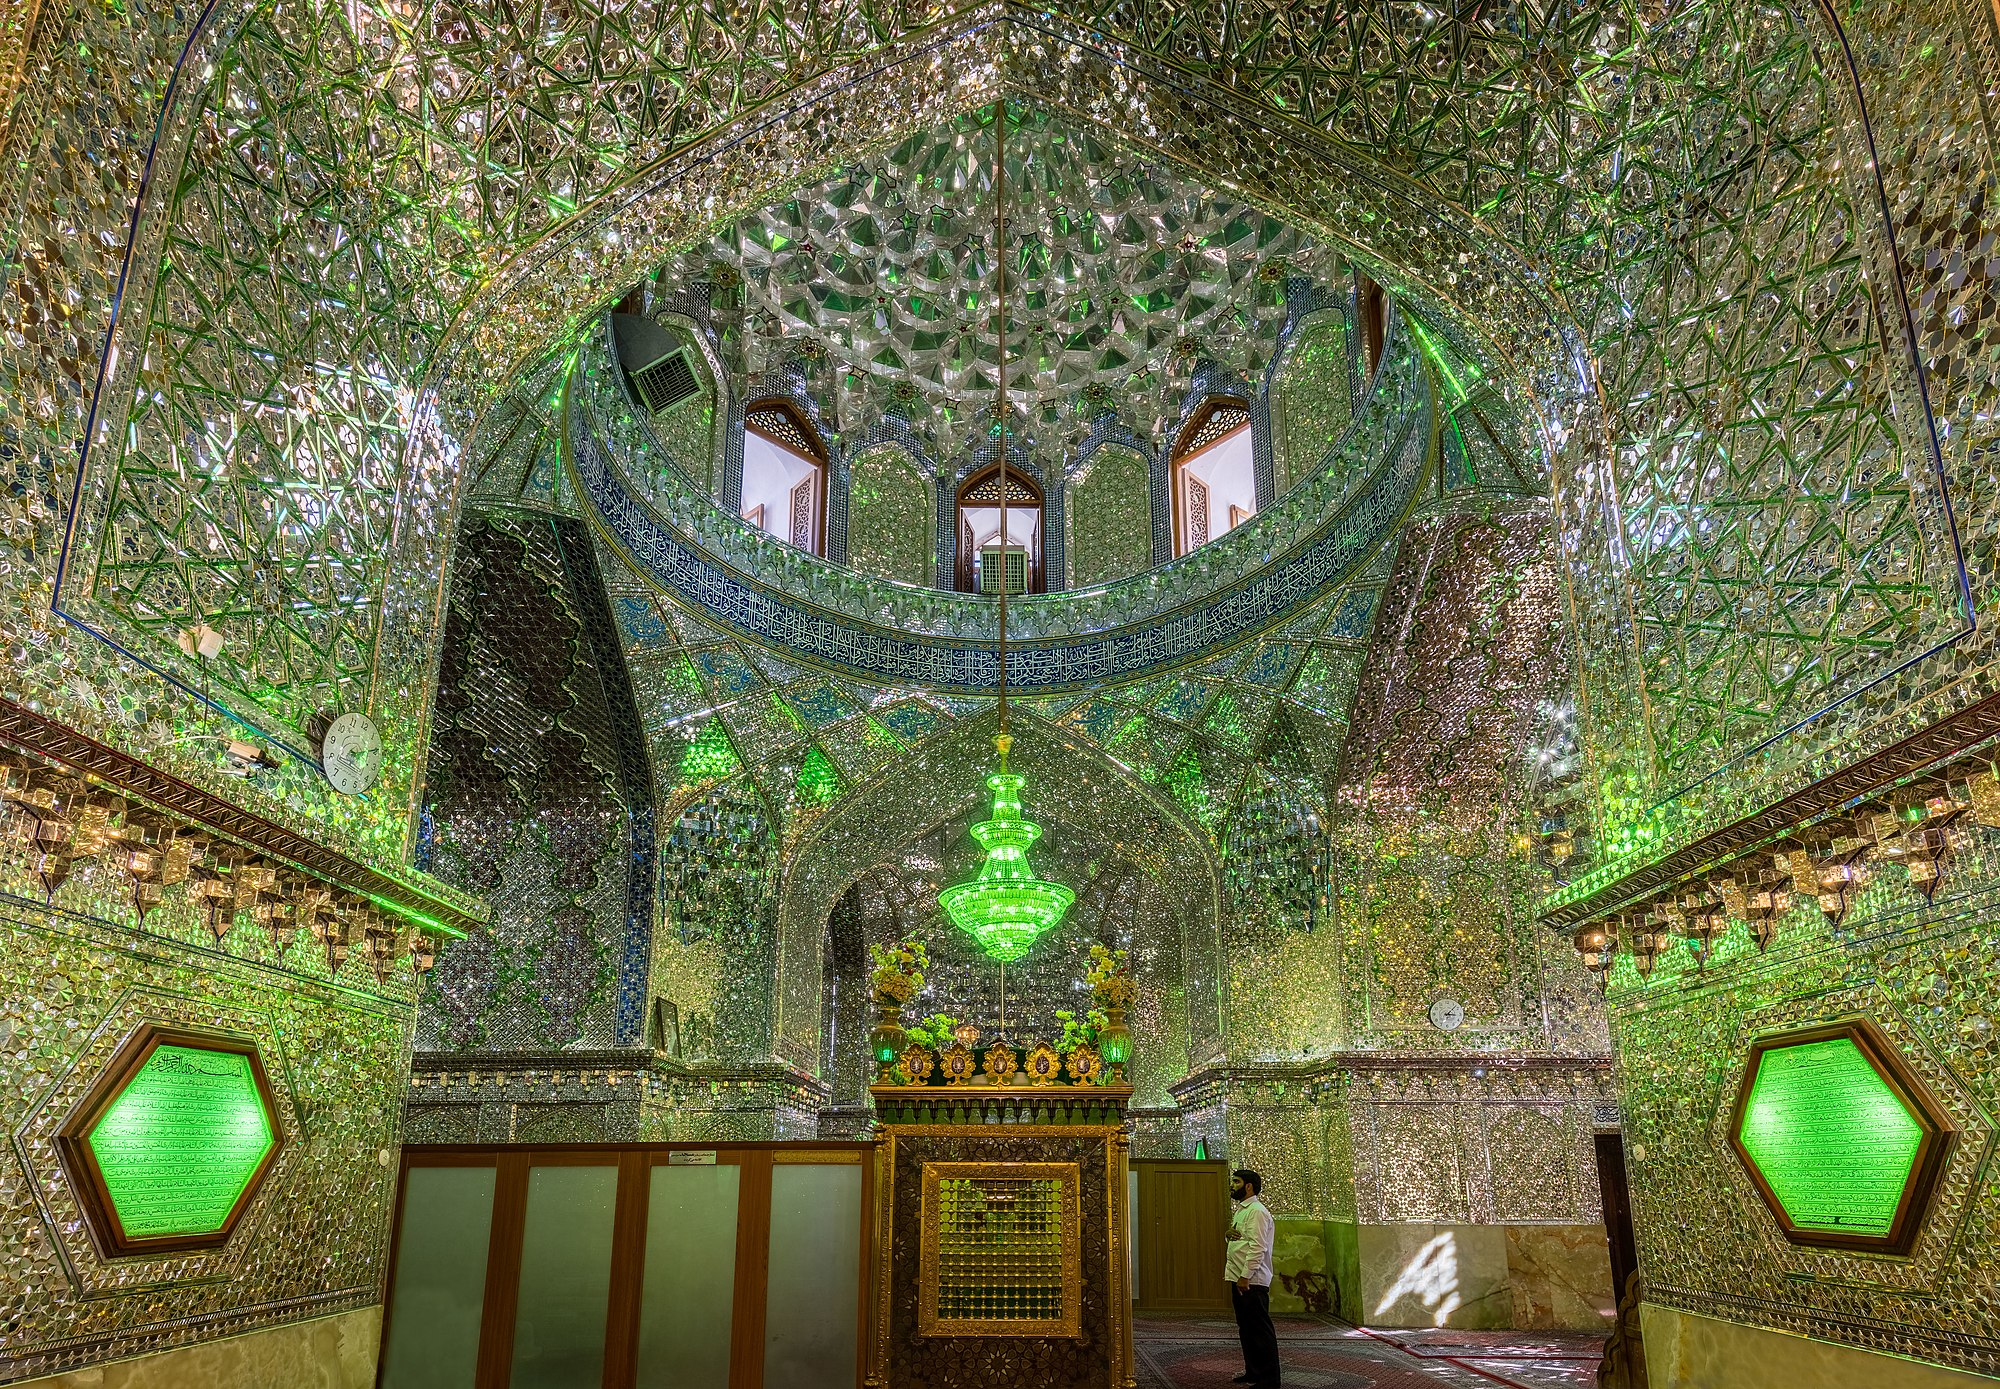 Interior of Mausoleum of Emir Ali, Shiraz, Iran. The current temple was built in the 19th century to replace the former one damaged over the centuries due to earthquakes. In this site rest the remains of Ali Ibn Hamz, nephew of shah of Cheragh.